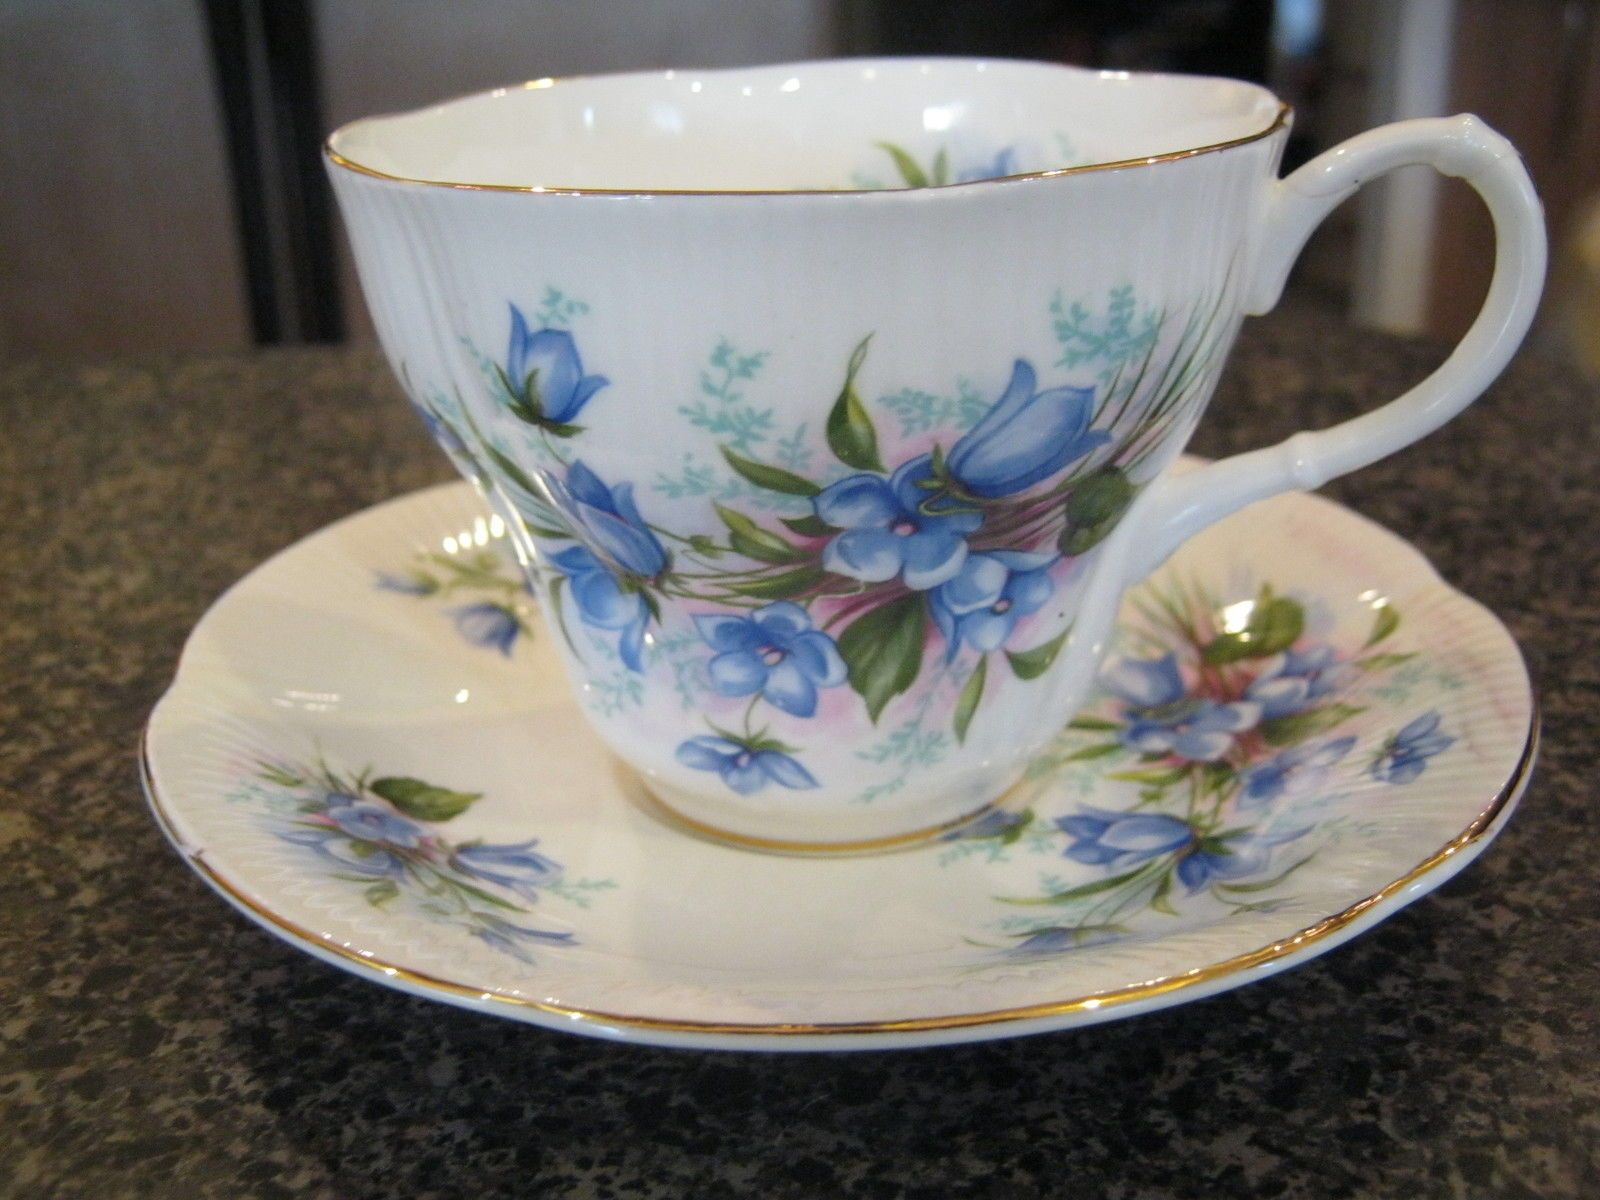 ROYAL ALBERT TEACUP CUP SAUCER BLUE FLOWERS FLORAL MORNING GLORY w